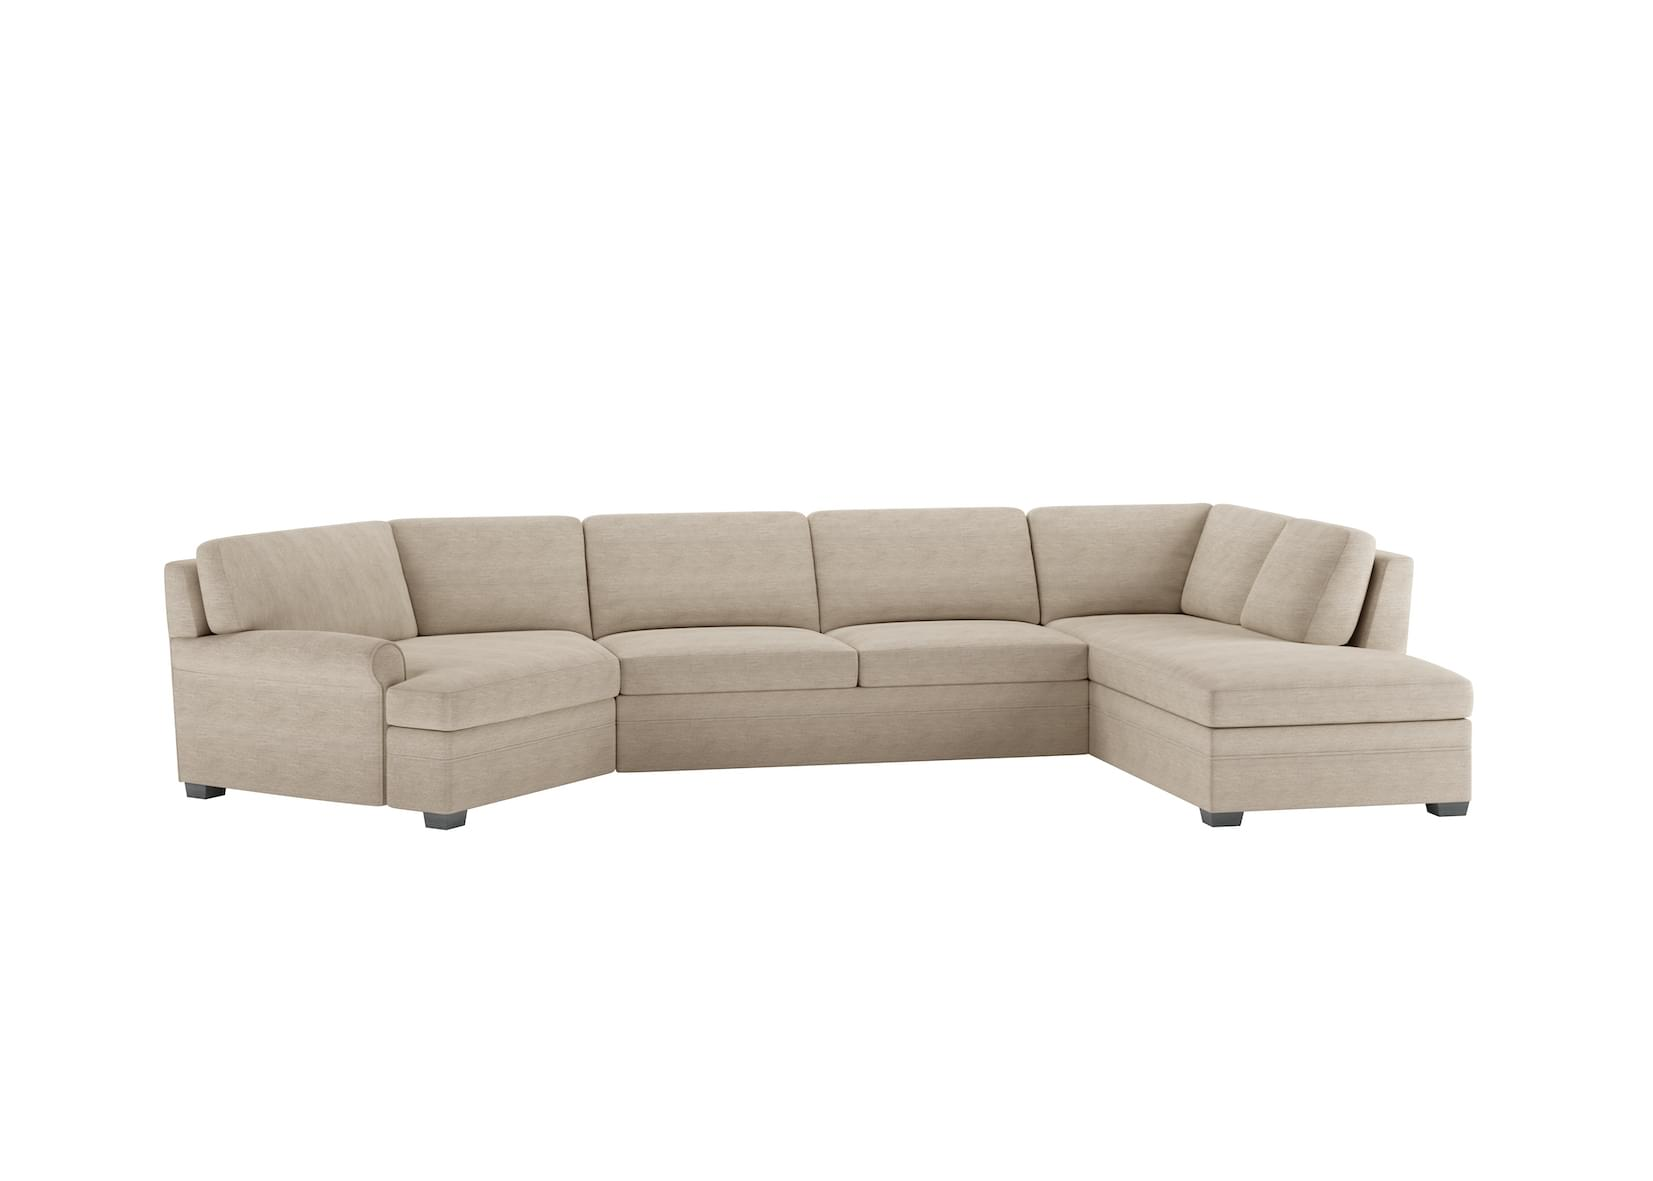 American Leather Gaines sofa at Mums Place Furniture Monterey CA